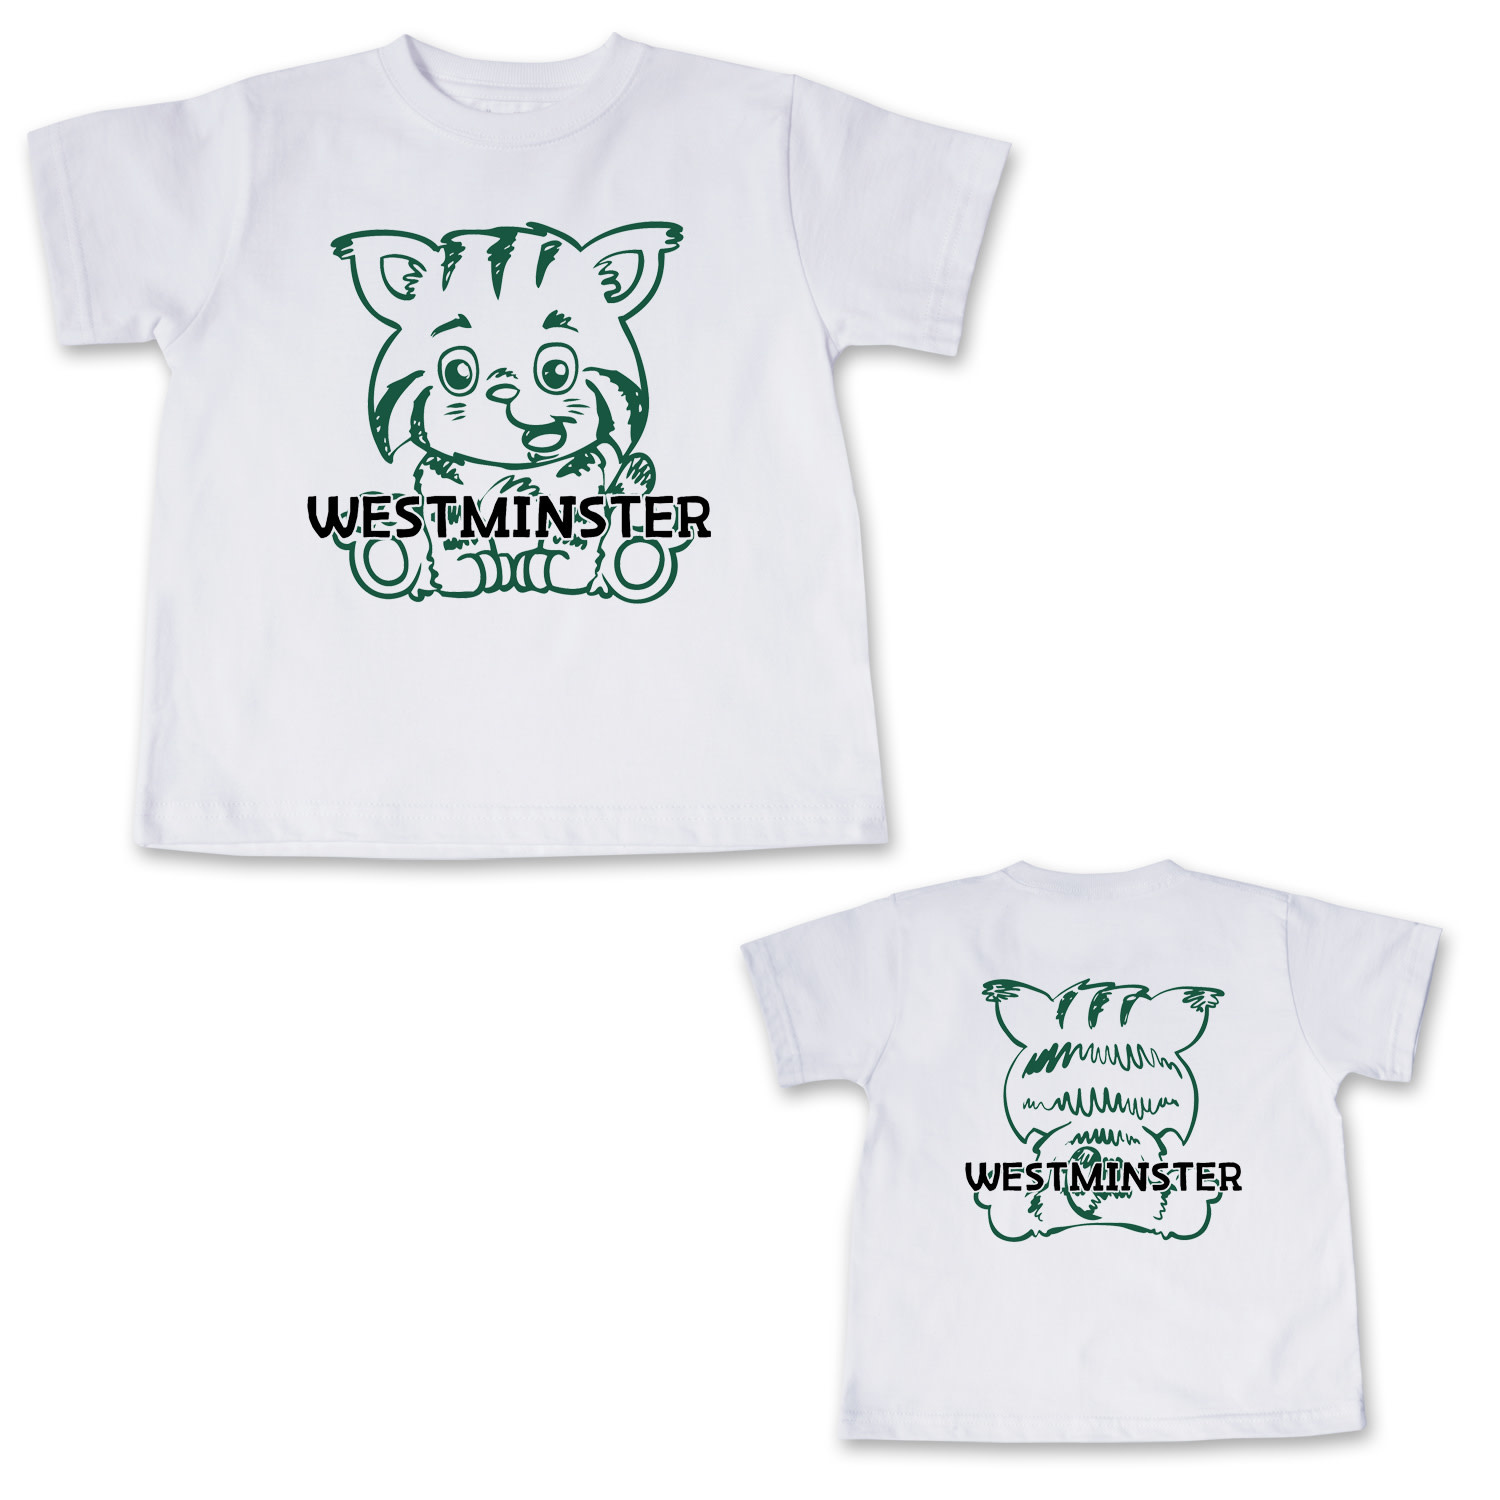 College Kids T: Toddler Short Sleeve with White Front & Back Wildcat